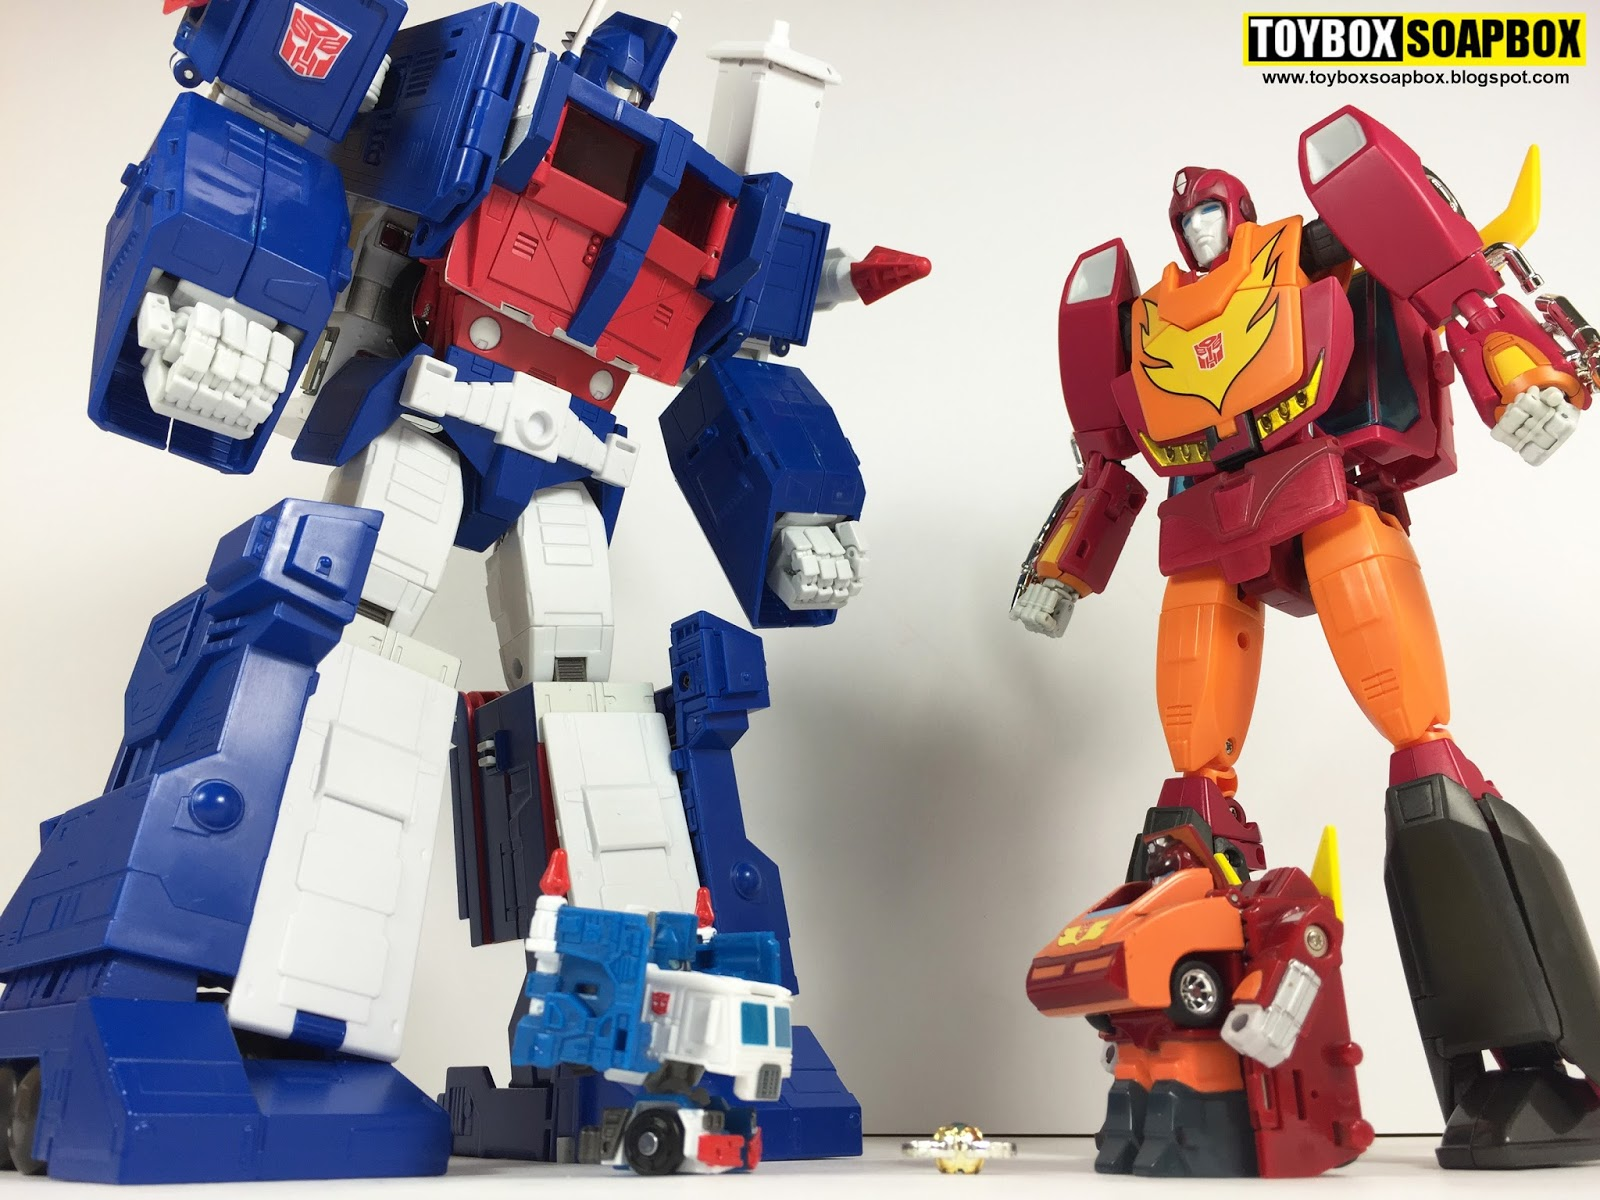 toybox soapbox: q transformers qtf05 ultra magnus review (or mini